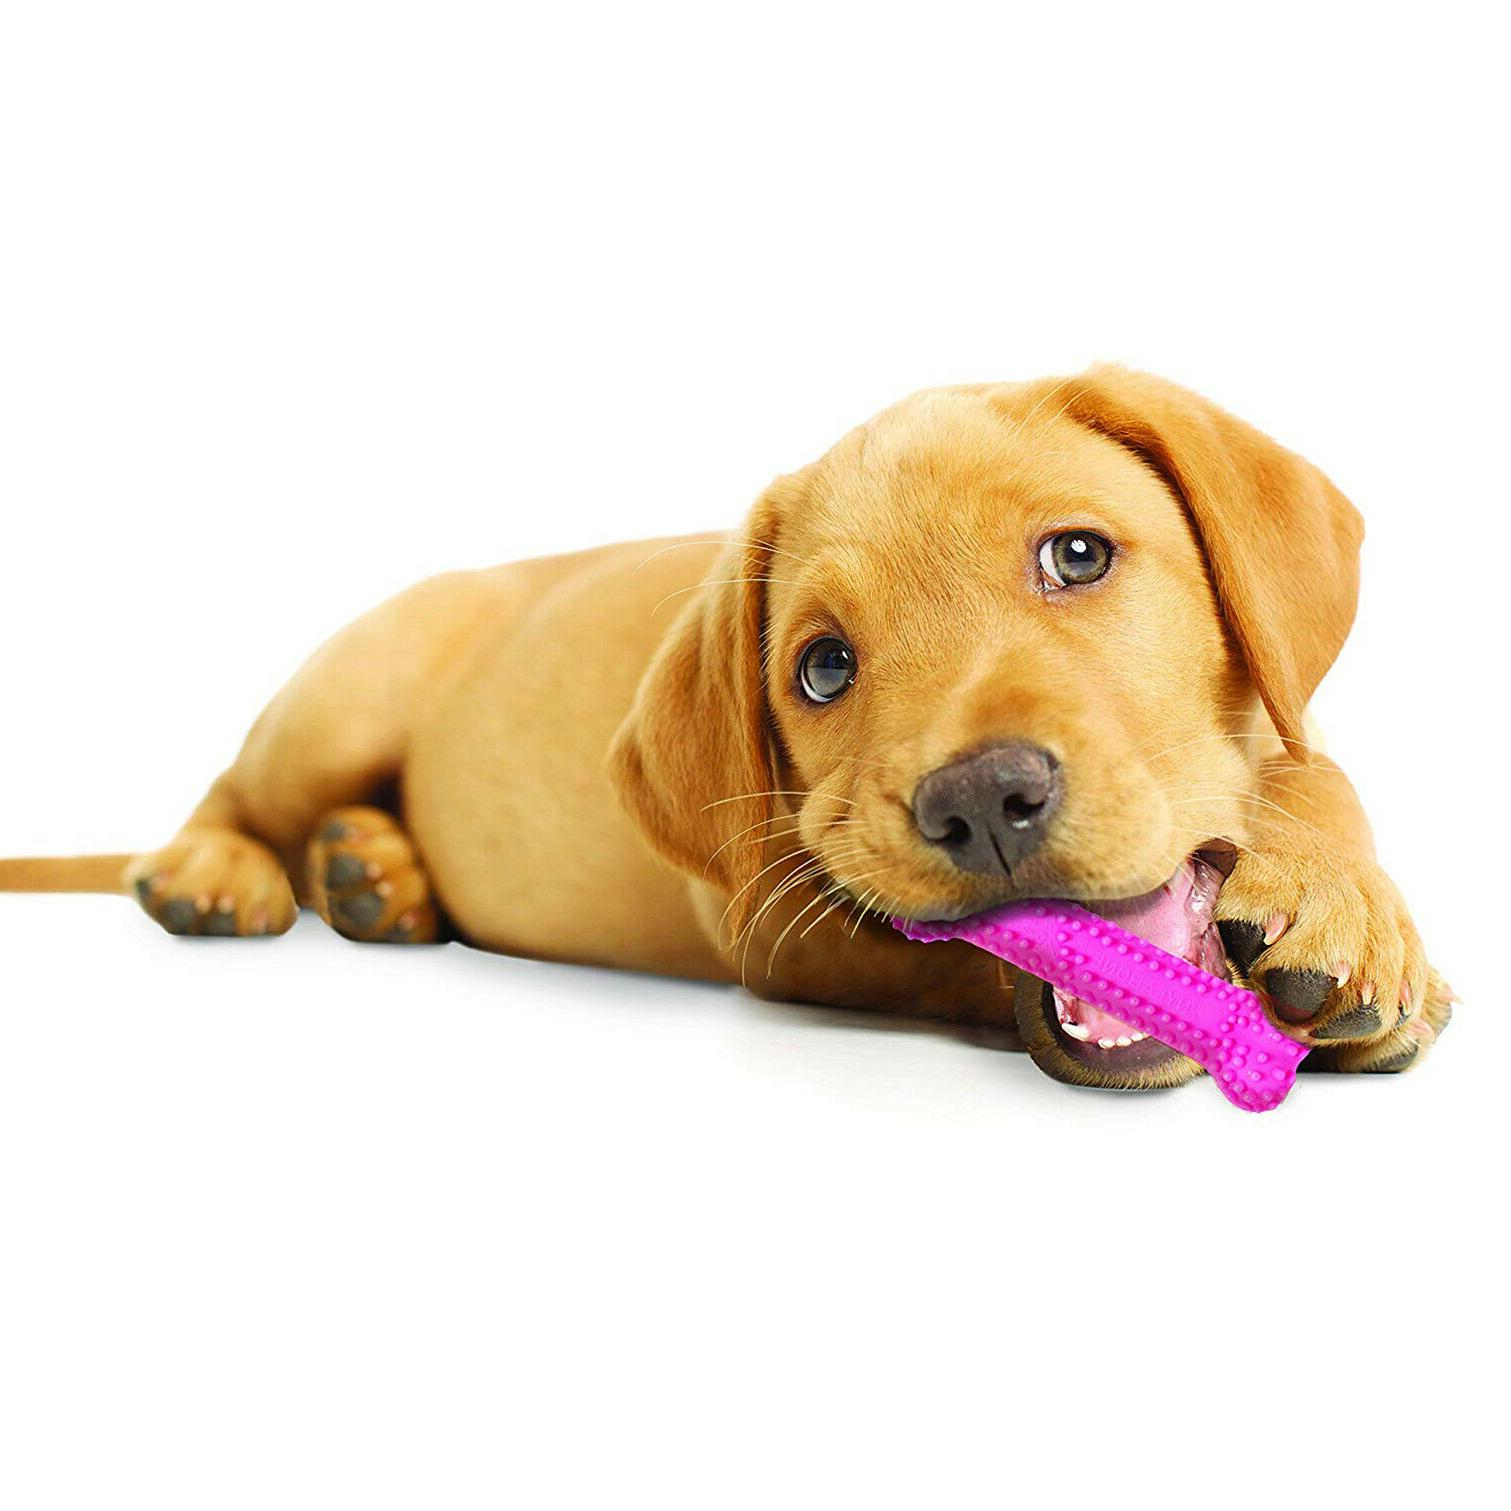 NYLABONE PUPPY Pets Dogs Petite Chewing